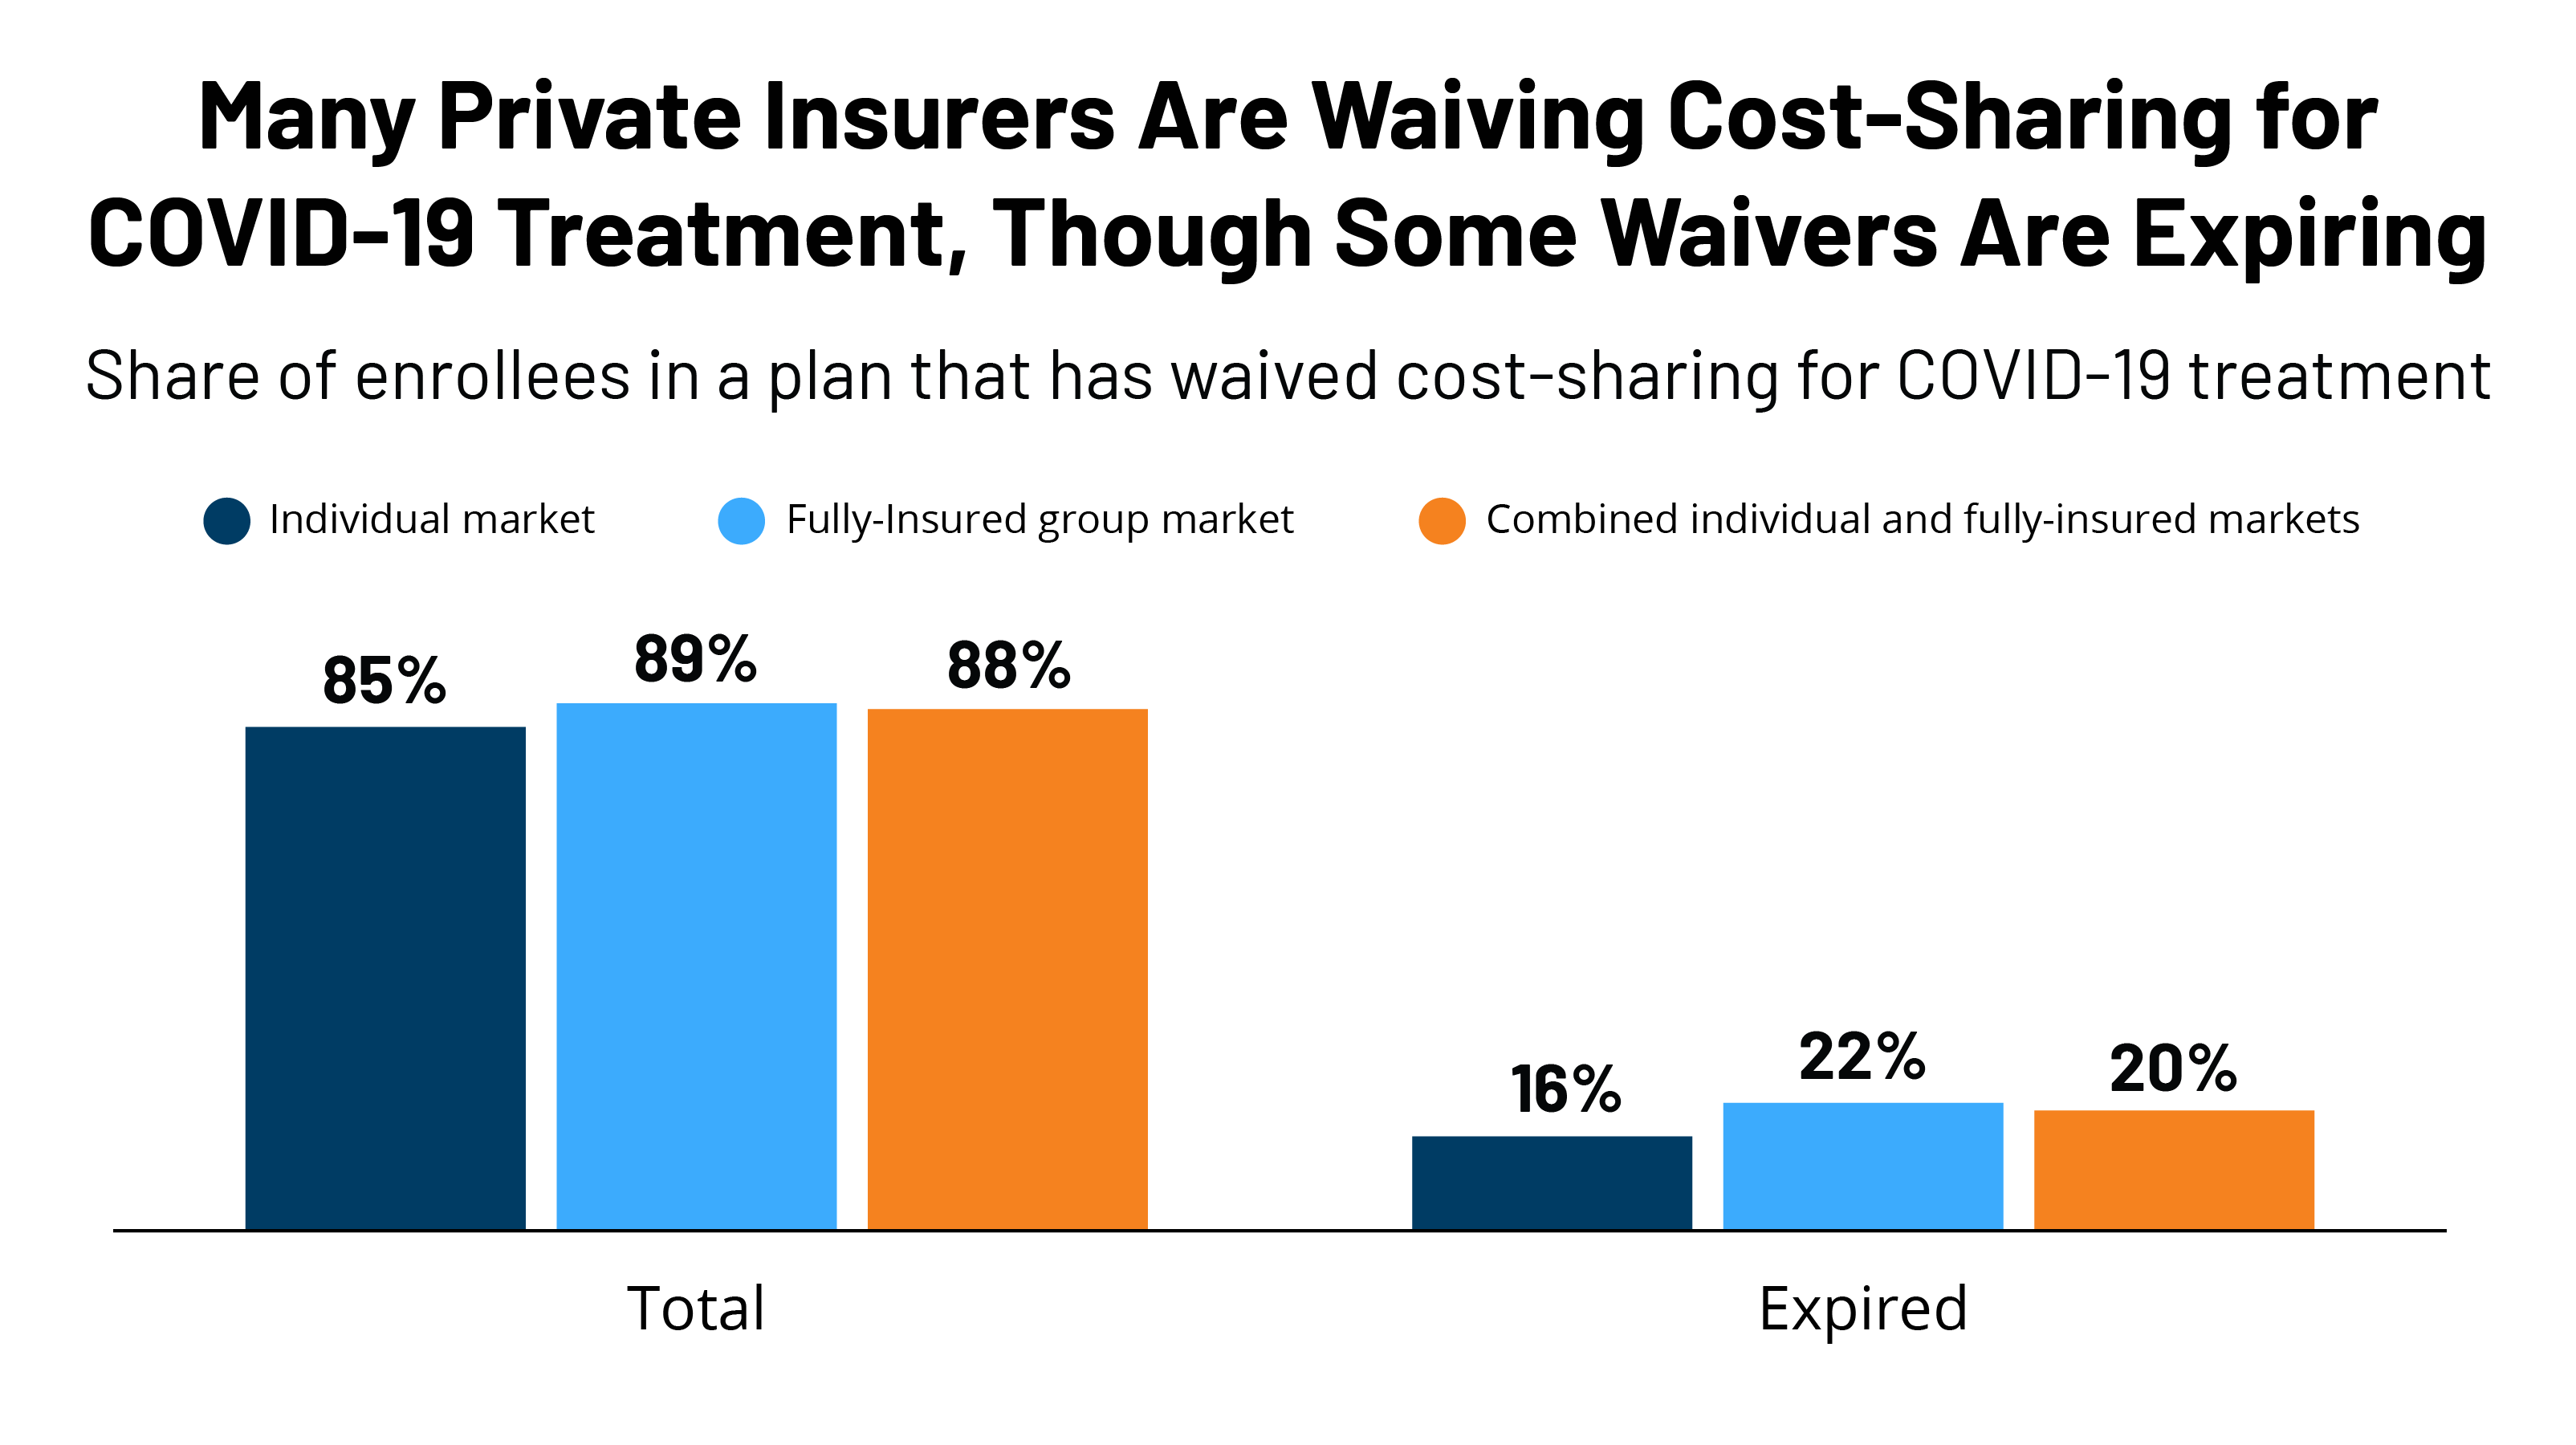 Insurers' COVID-19 waivers to expire in coming months